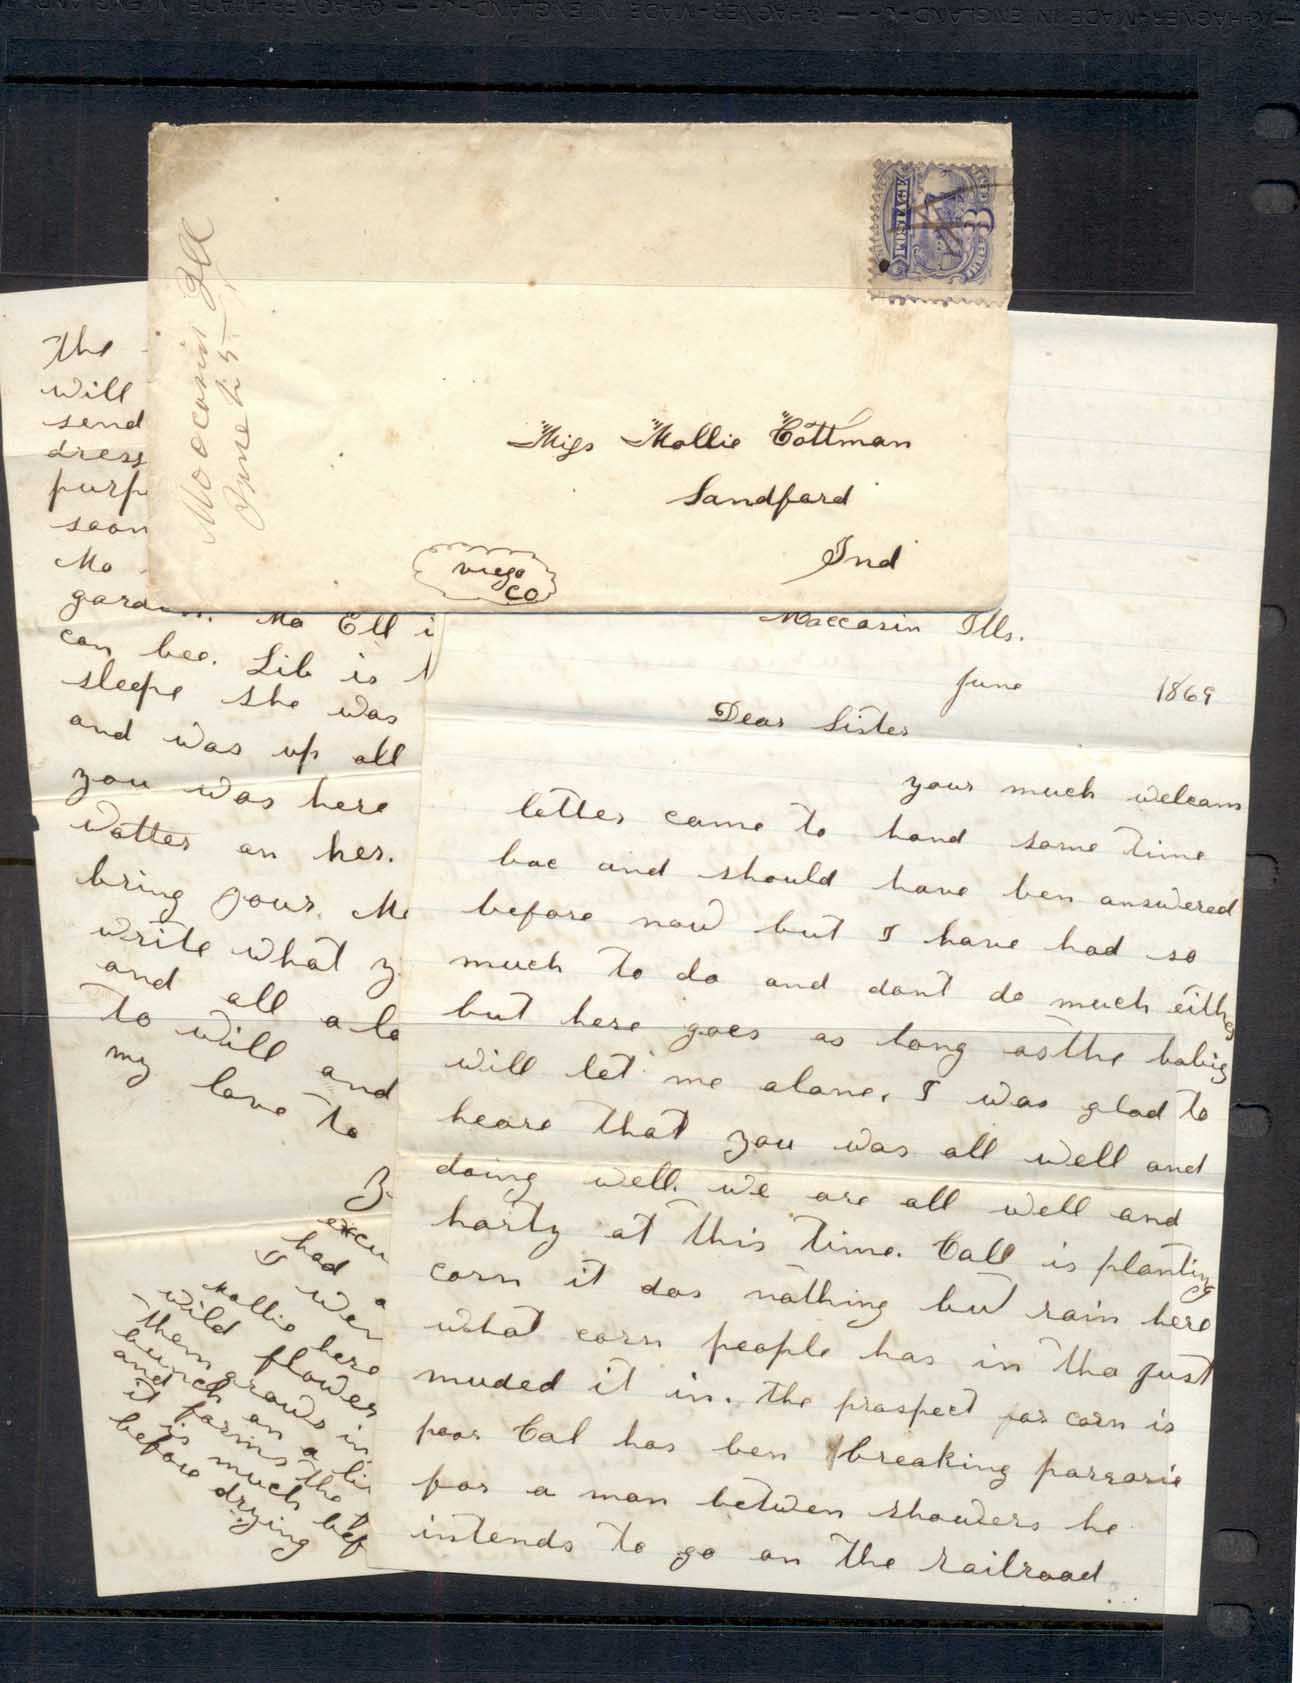 USA 1869 cover, 3c locomotive with family letter from brother to sisters